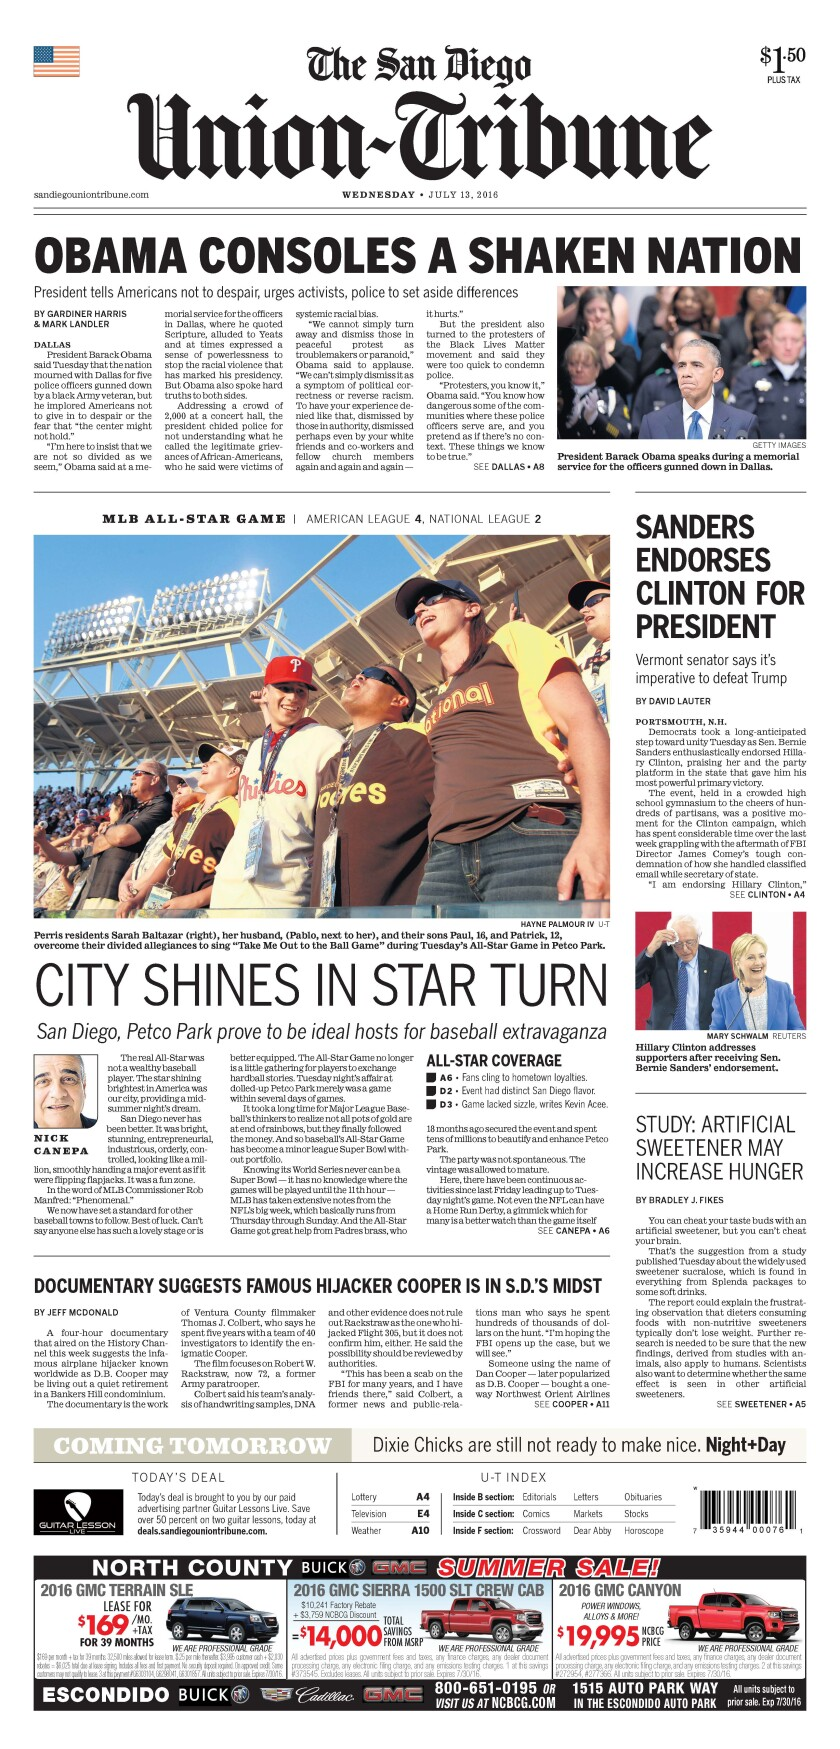 Front page of The San Diego Union-Tribune, July 13, 2016.